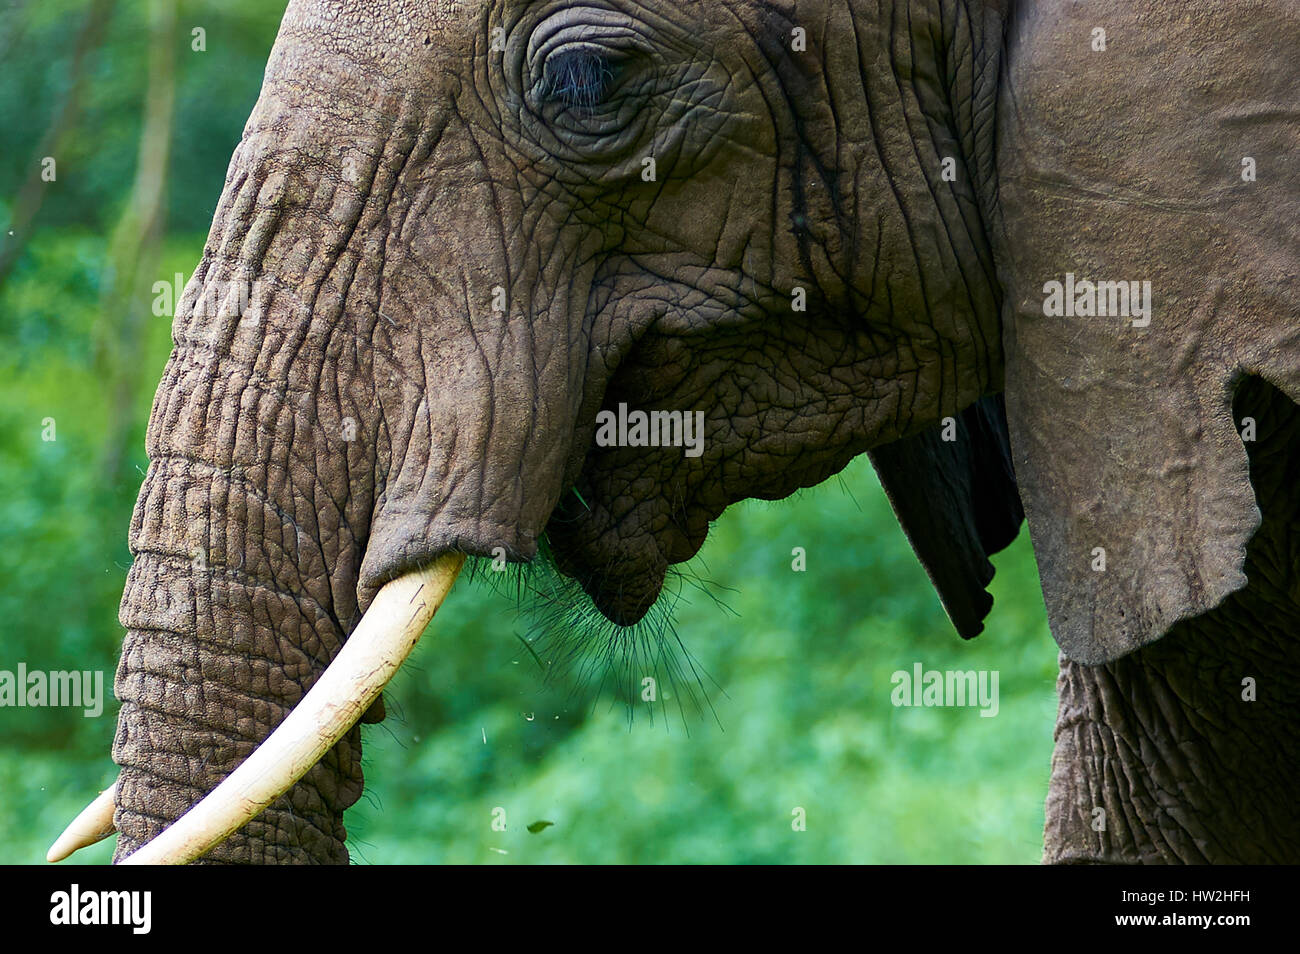 Elephant having a close look at the photographer - Stock Image